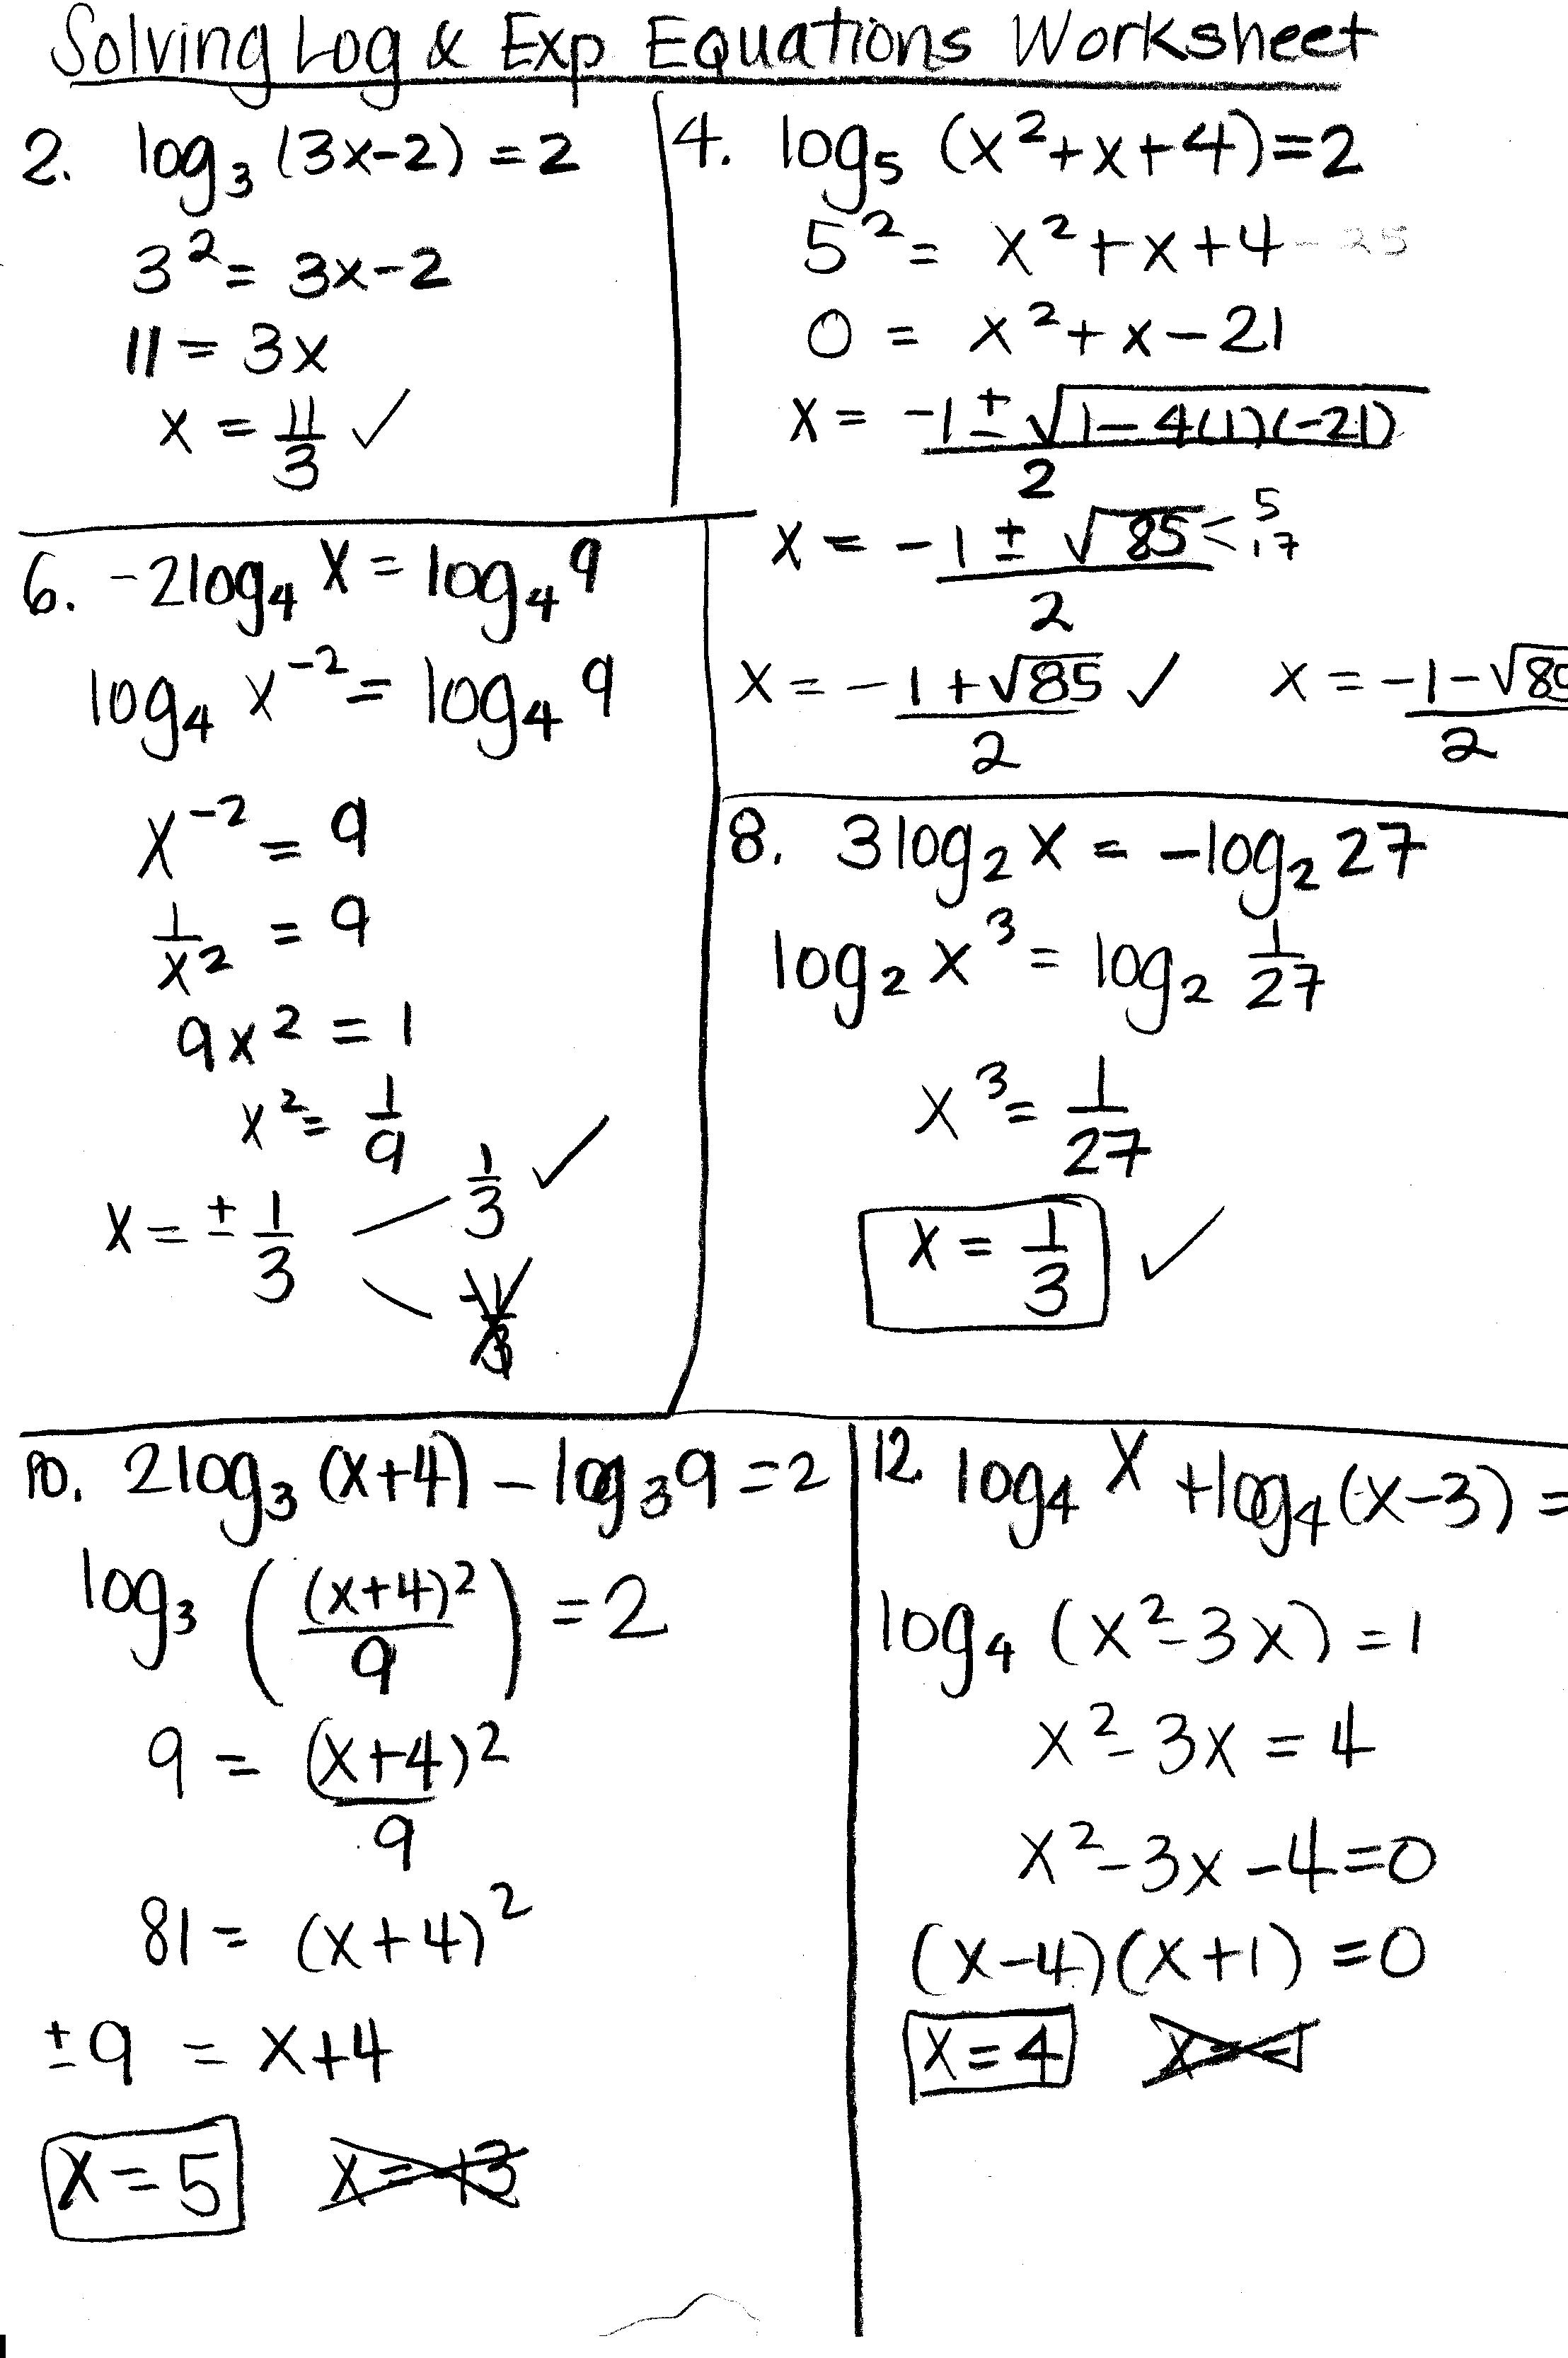 Worksheet Solving Exponential Equations - Synhoff